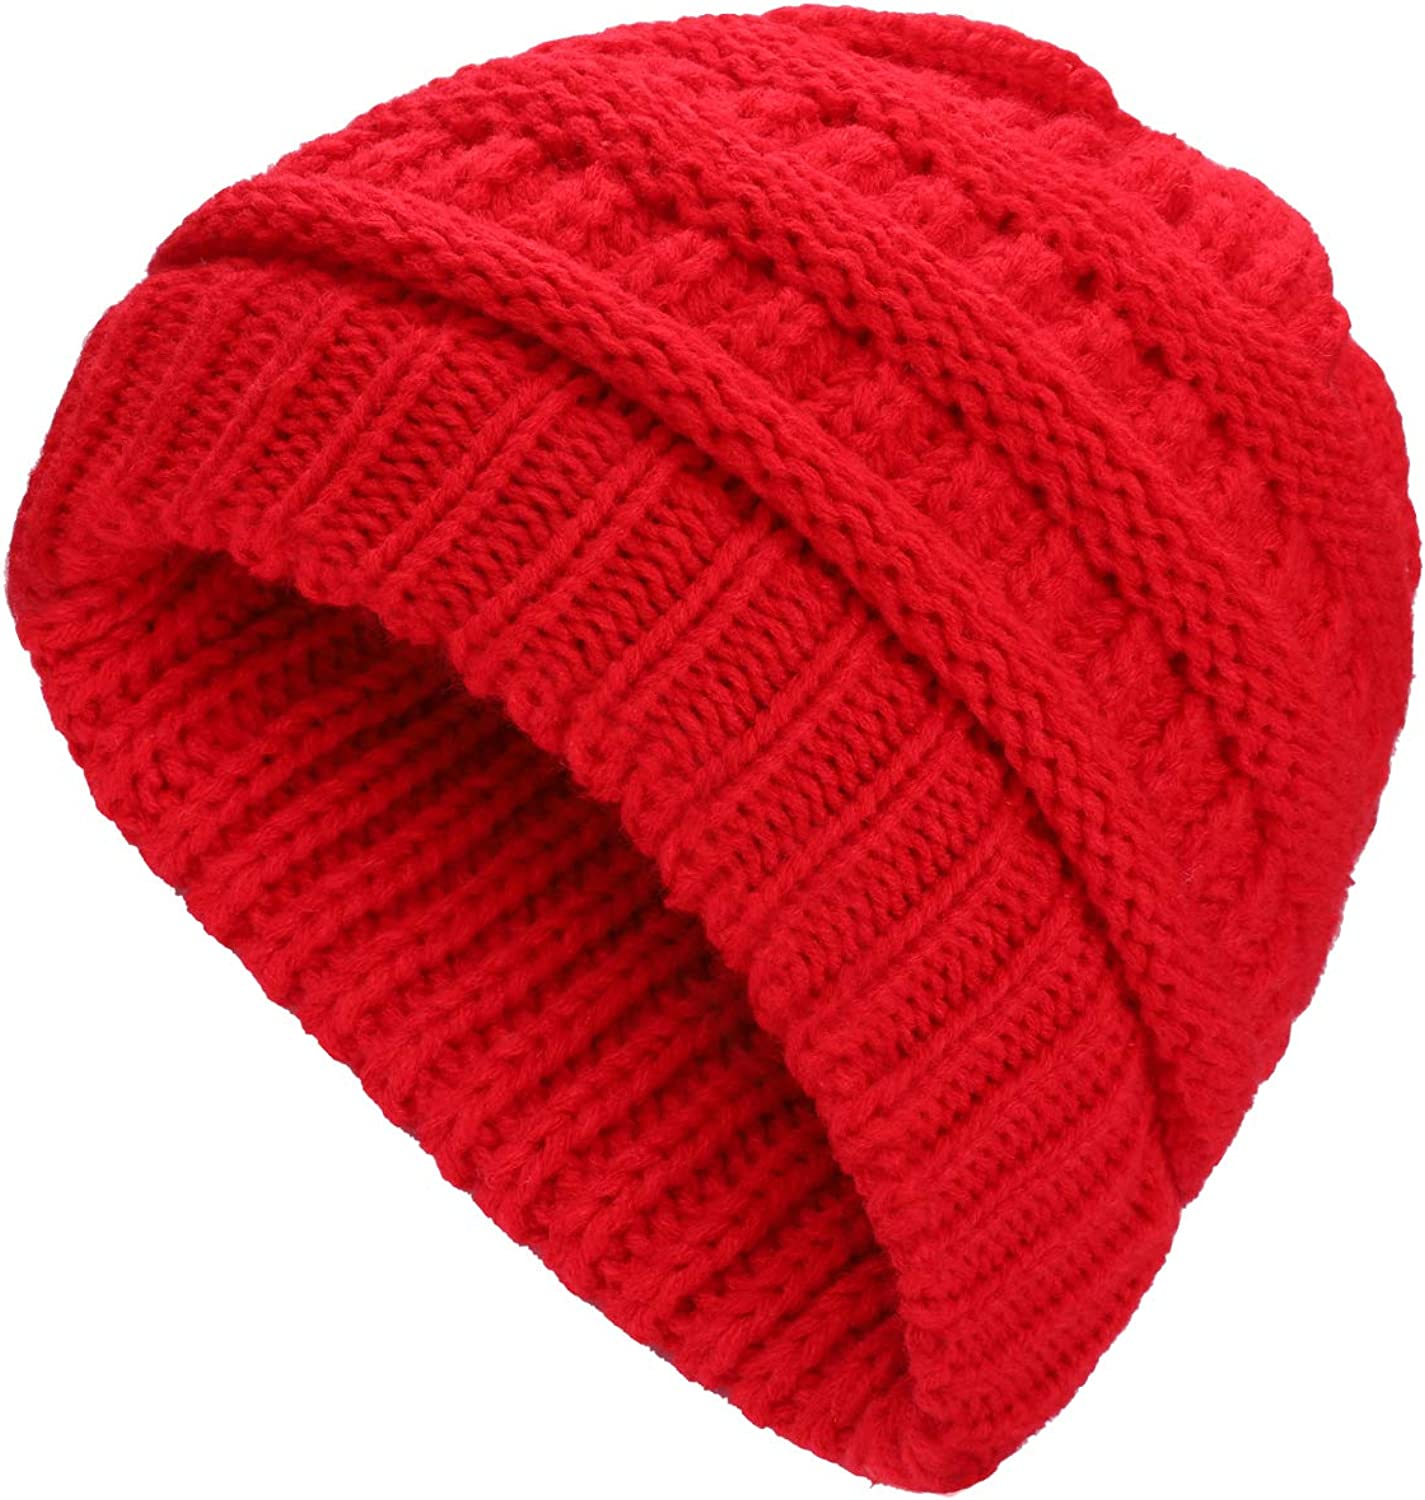 Toosell Winter Daily Warm Casual Ponytail Hats Women Messy Bun Skull Knitted Beanie Fleece Fur Lining Cap